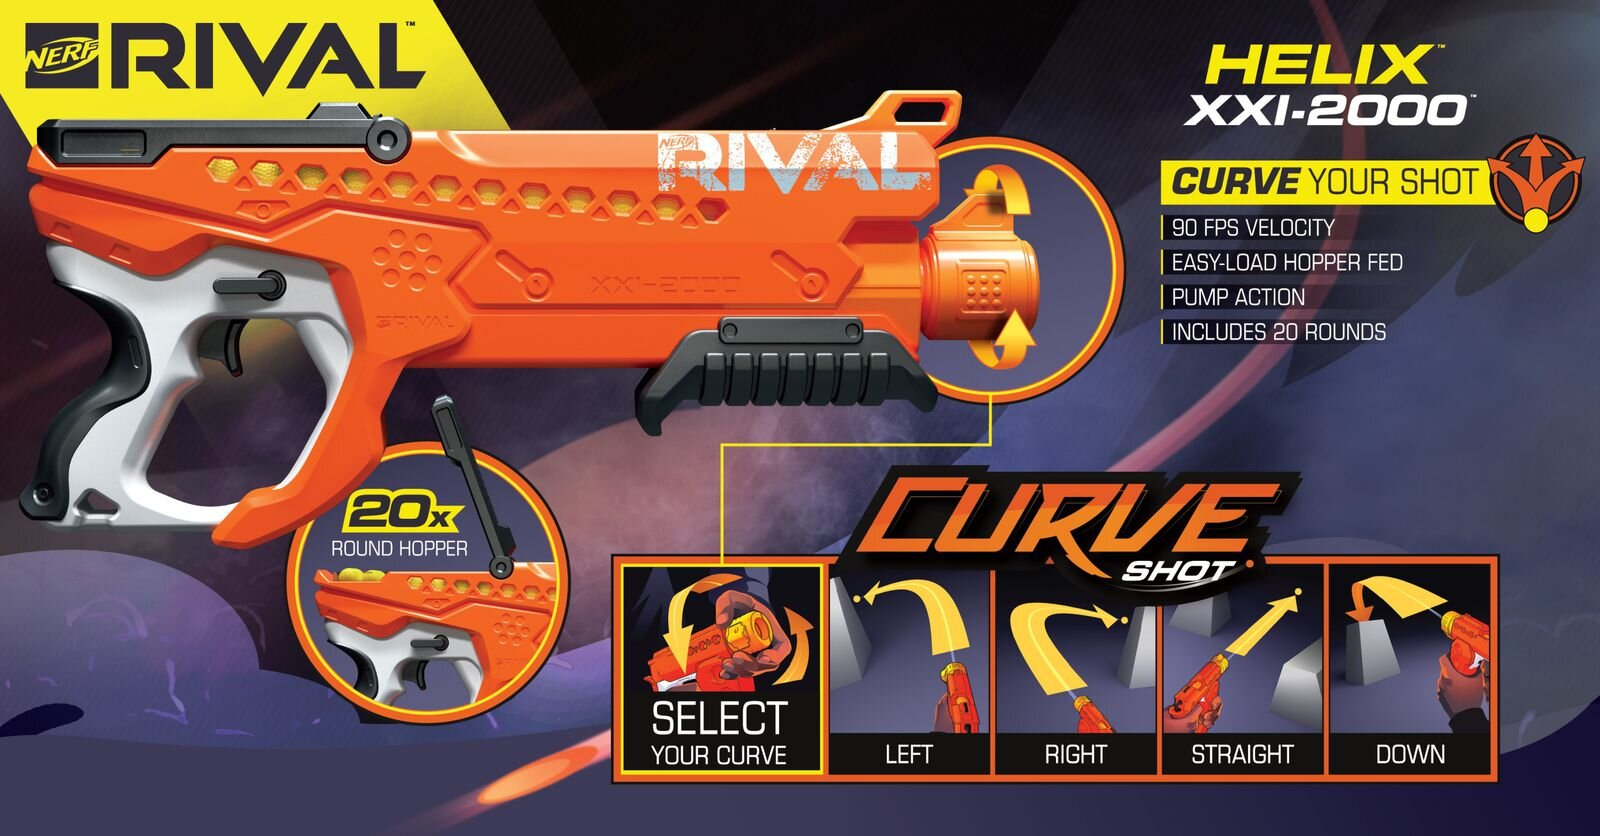 Nerf Now Has Rival Guns That Blast Out Curved Shots!1